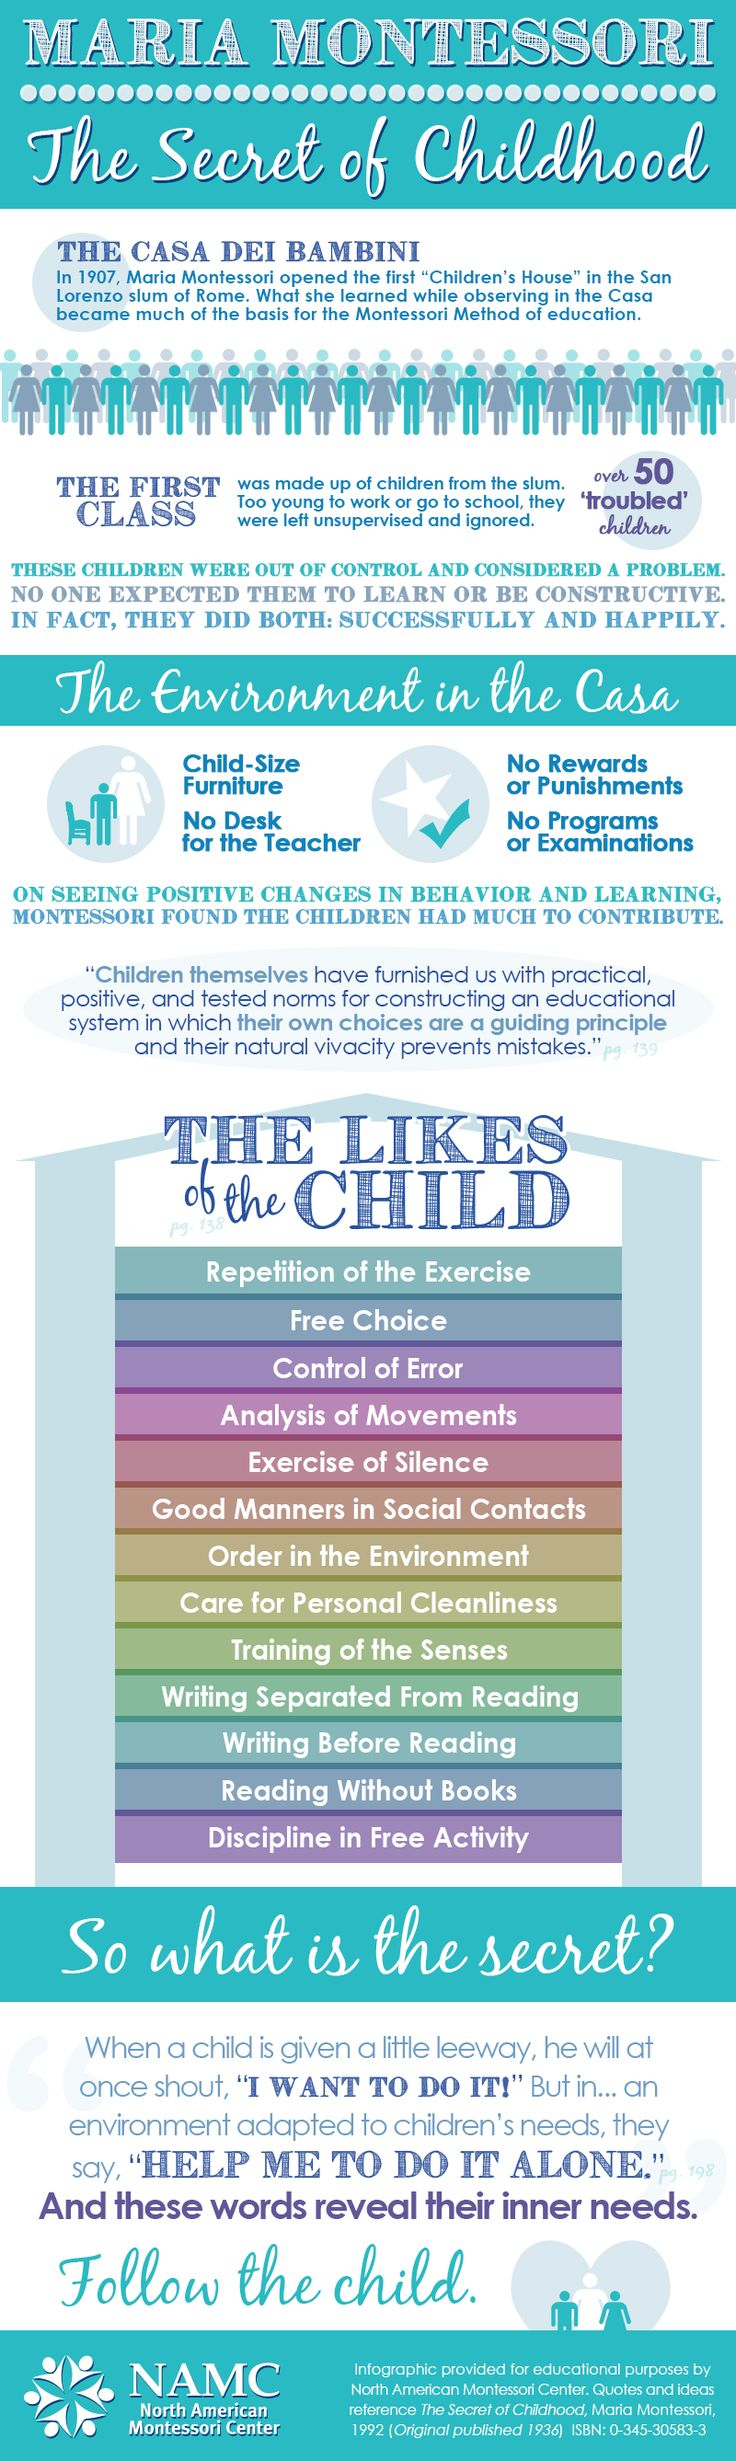 Secret of Childhood based on Maria Montessori's philosophy